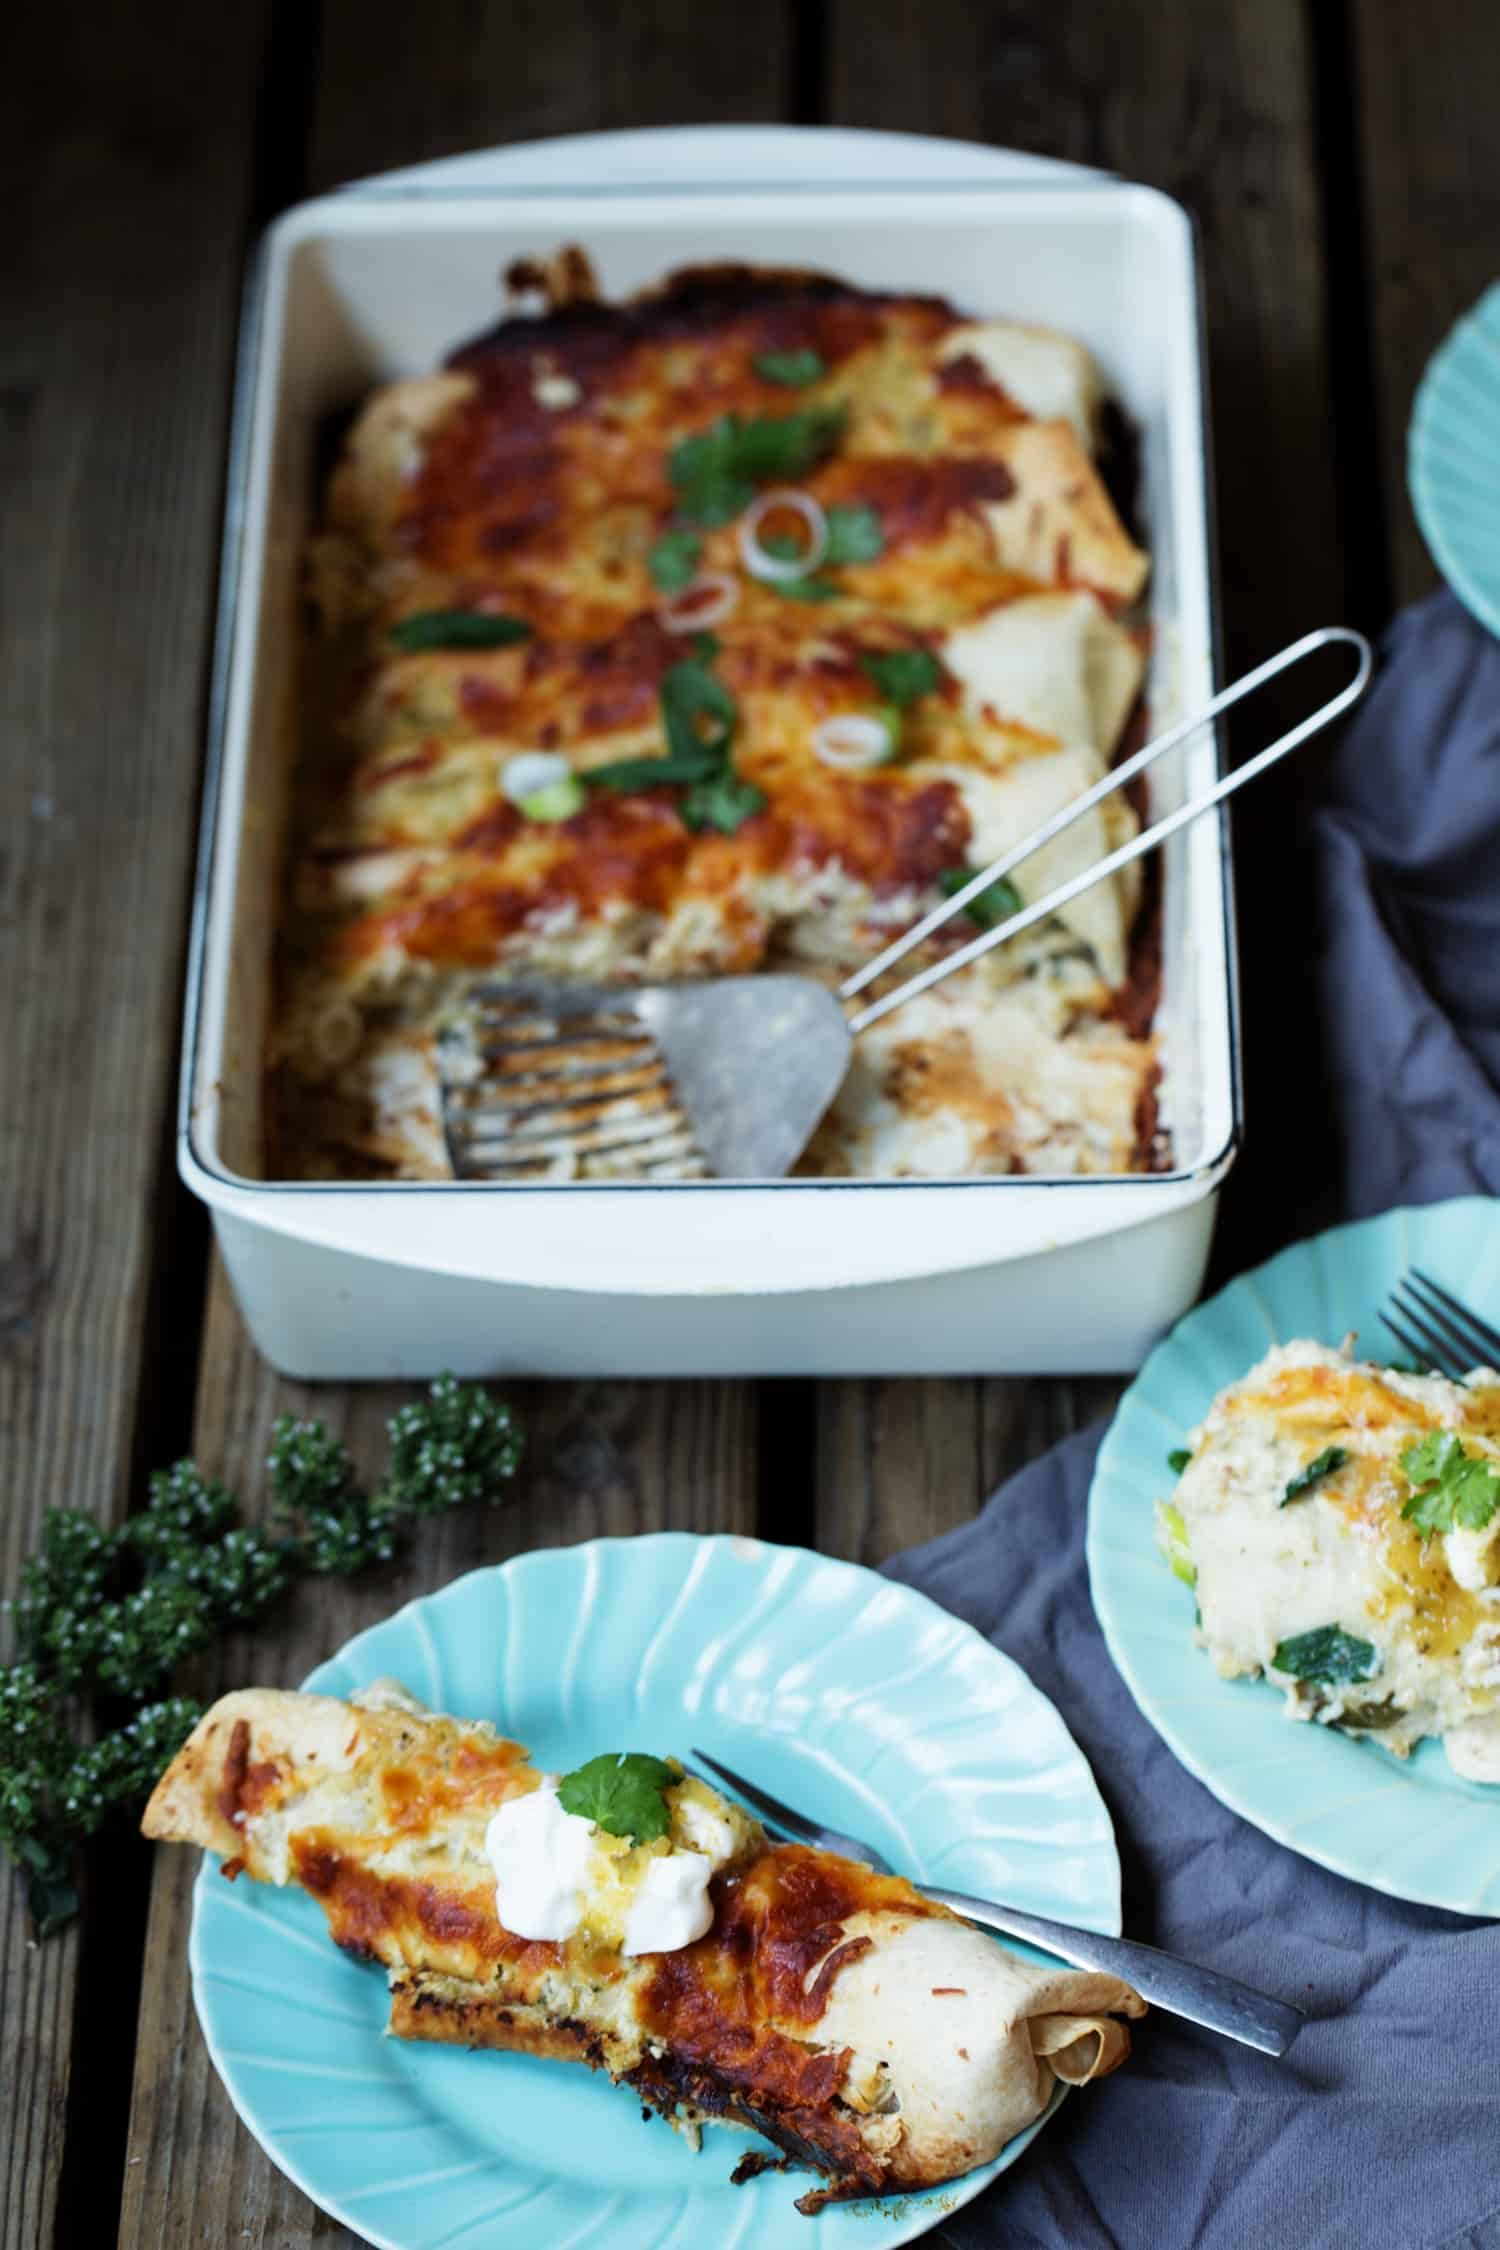 Creamy Chile Verde Chicken Enchiladas - easy meal for a crowd #MakeGameTimeSaucy #CollectiveBias